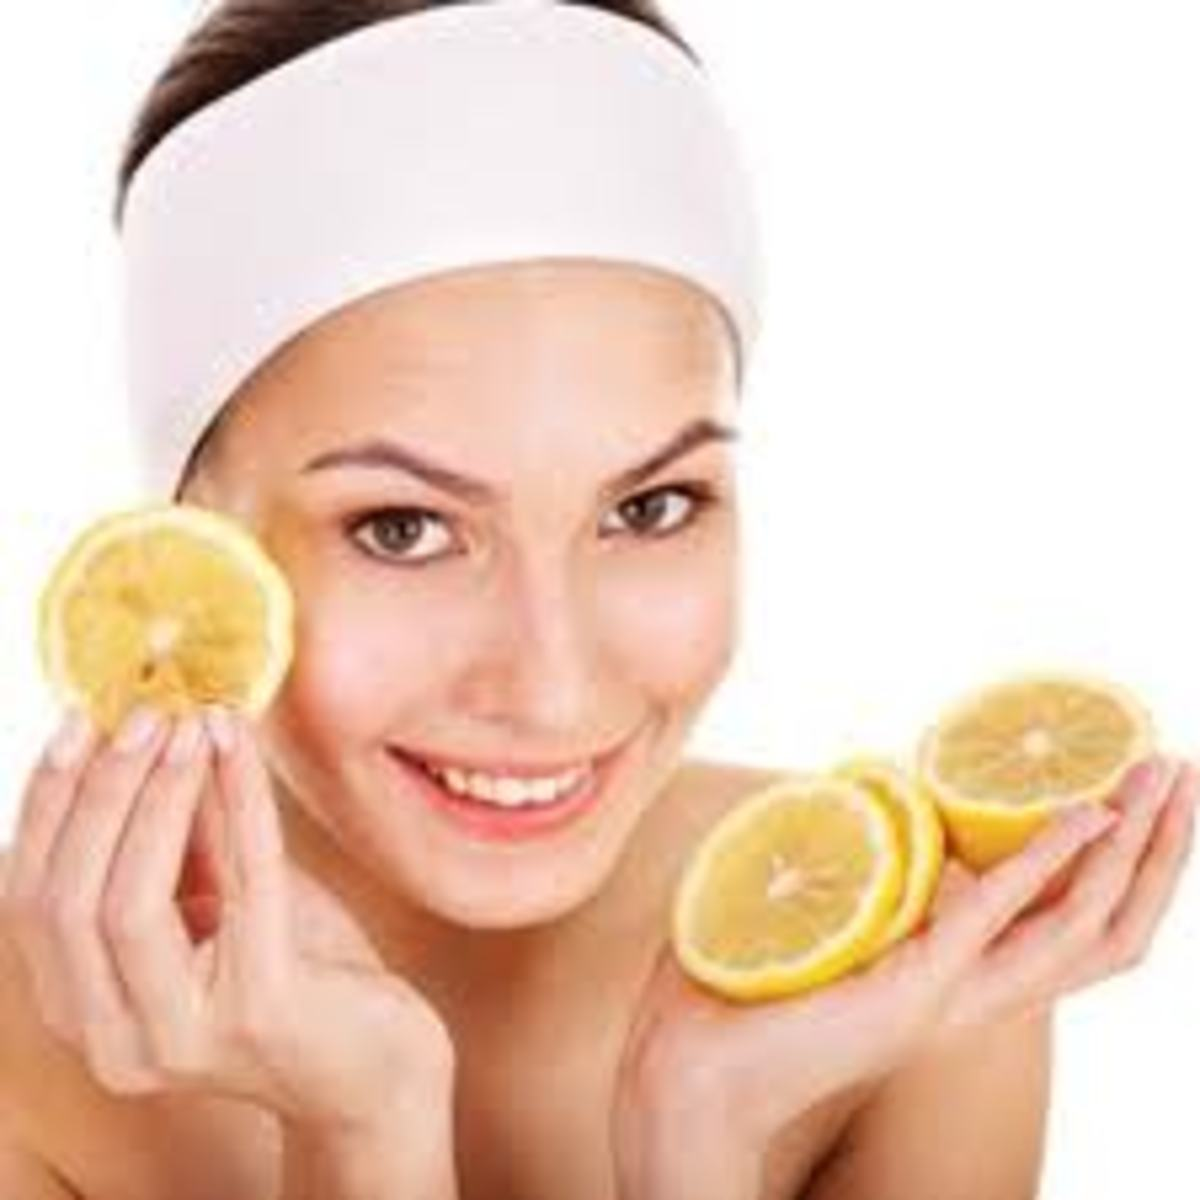 Lemon juice works effectively in reducing acne scars